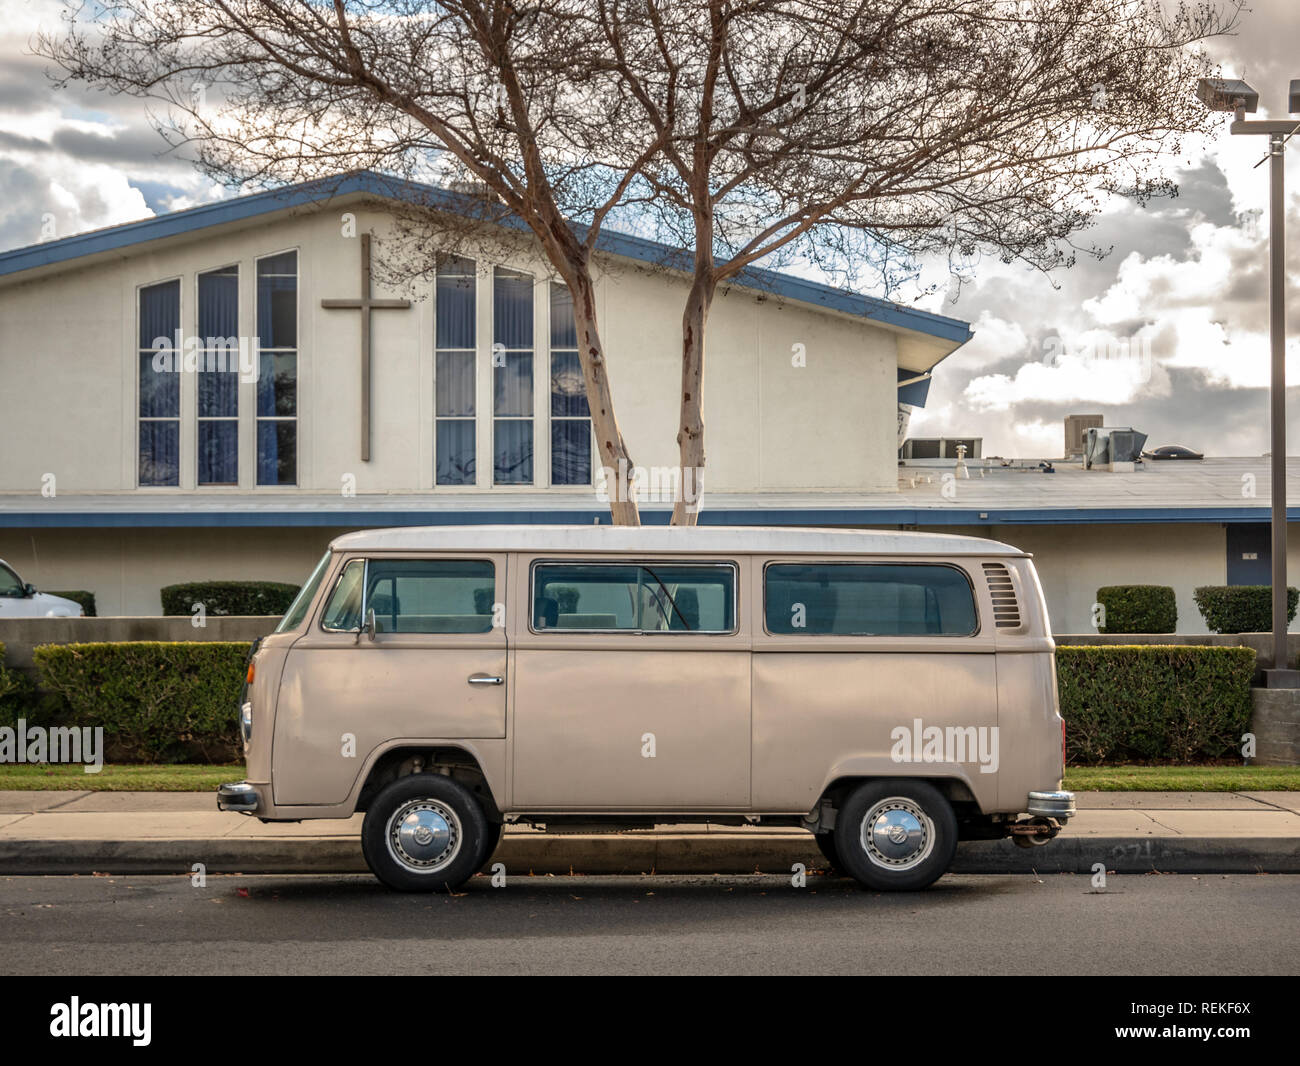 A vintage VW bus parked on the street in front of church. - Stock Image